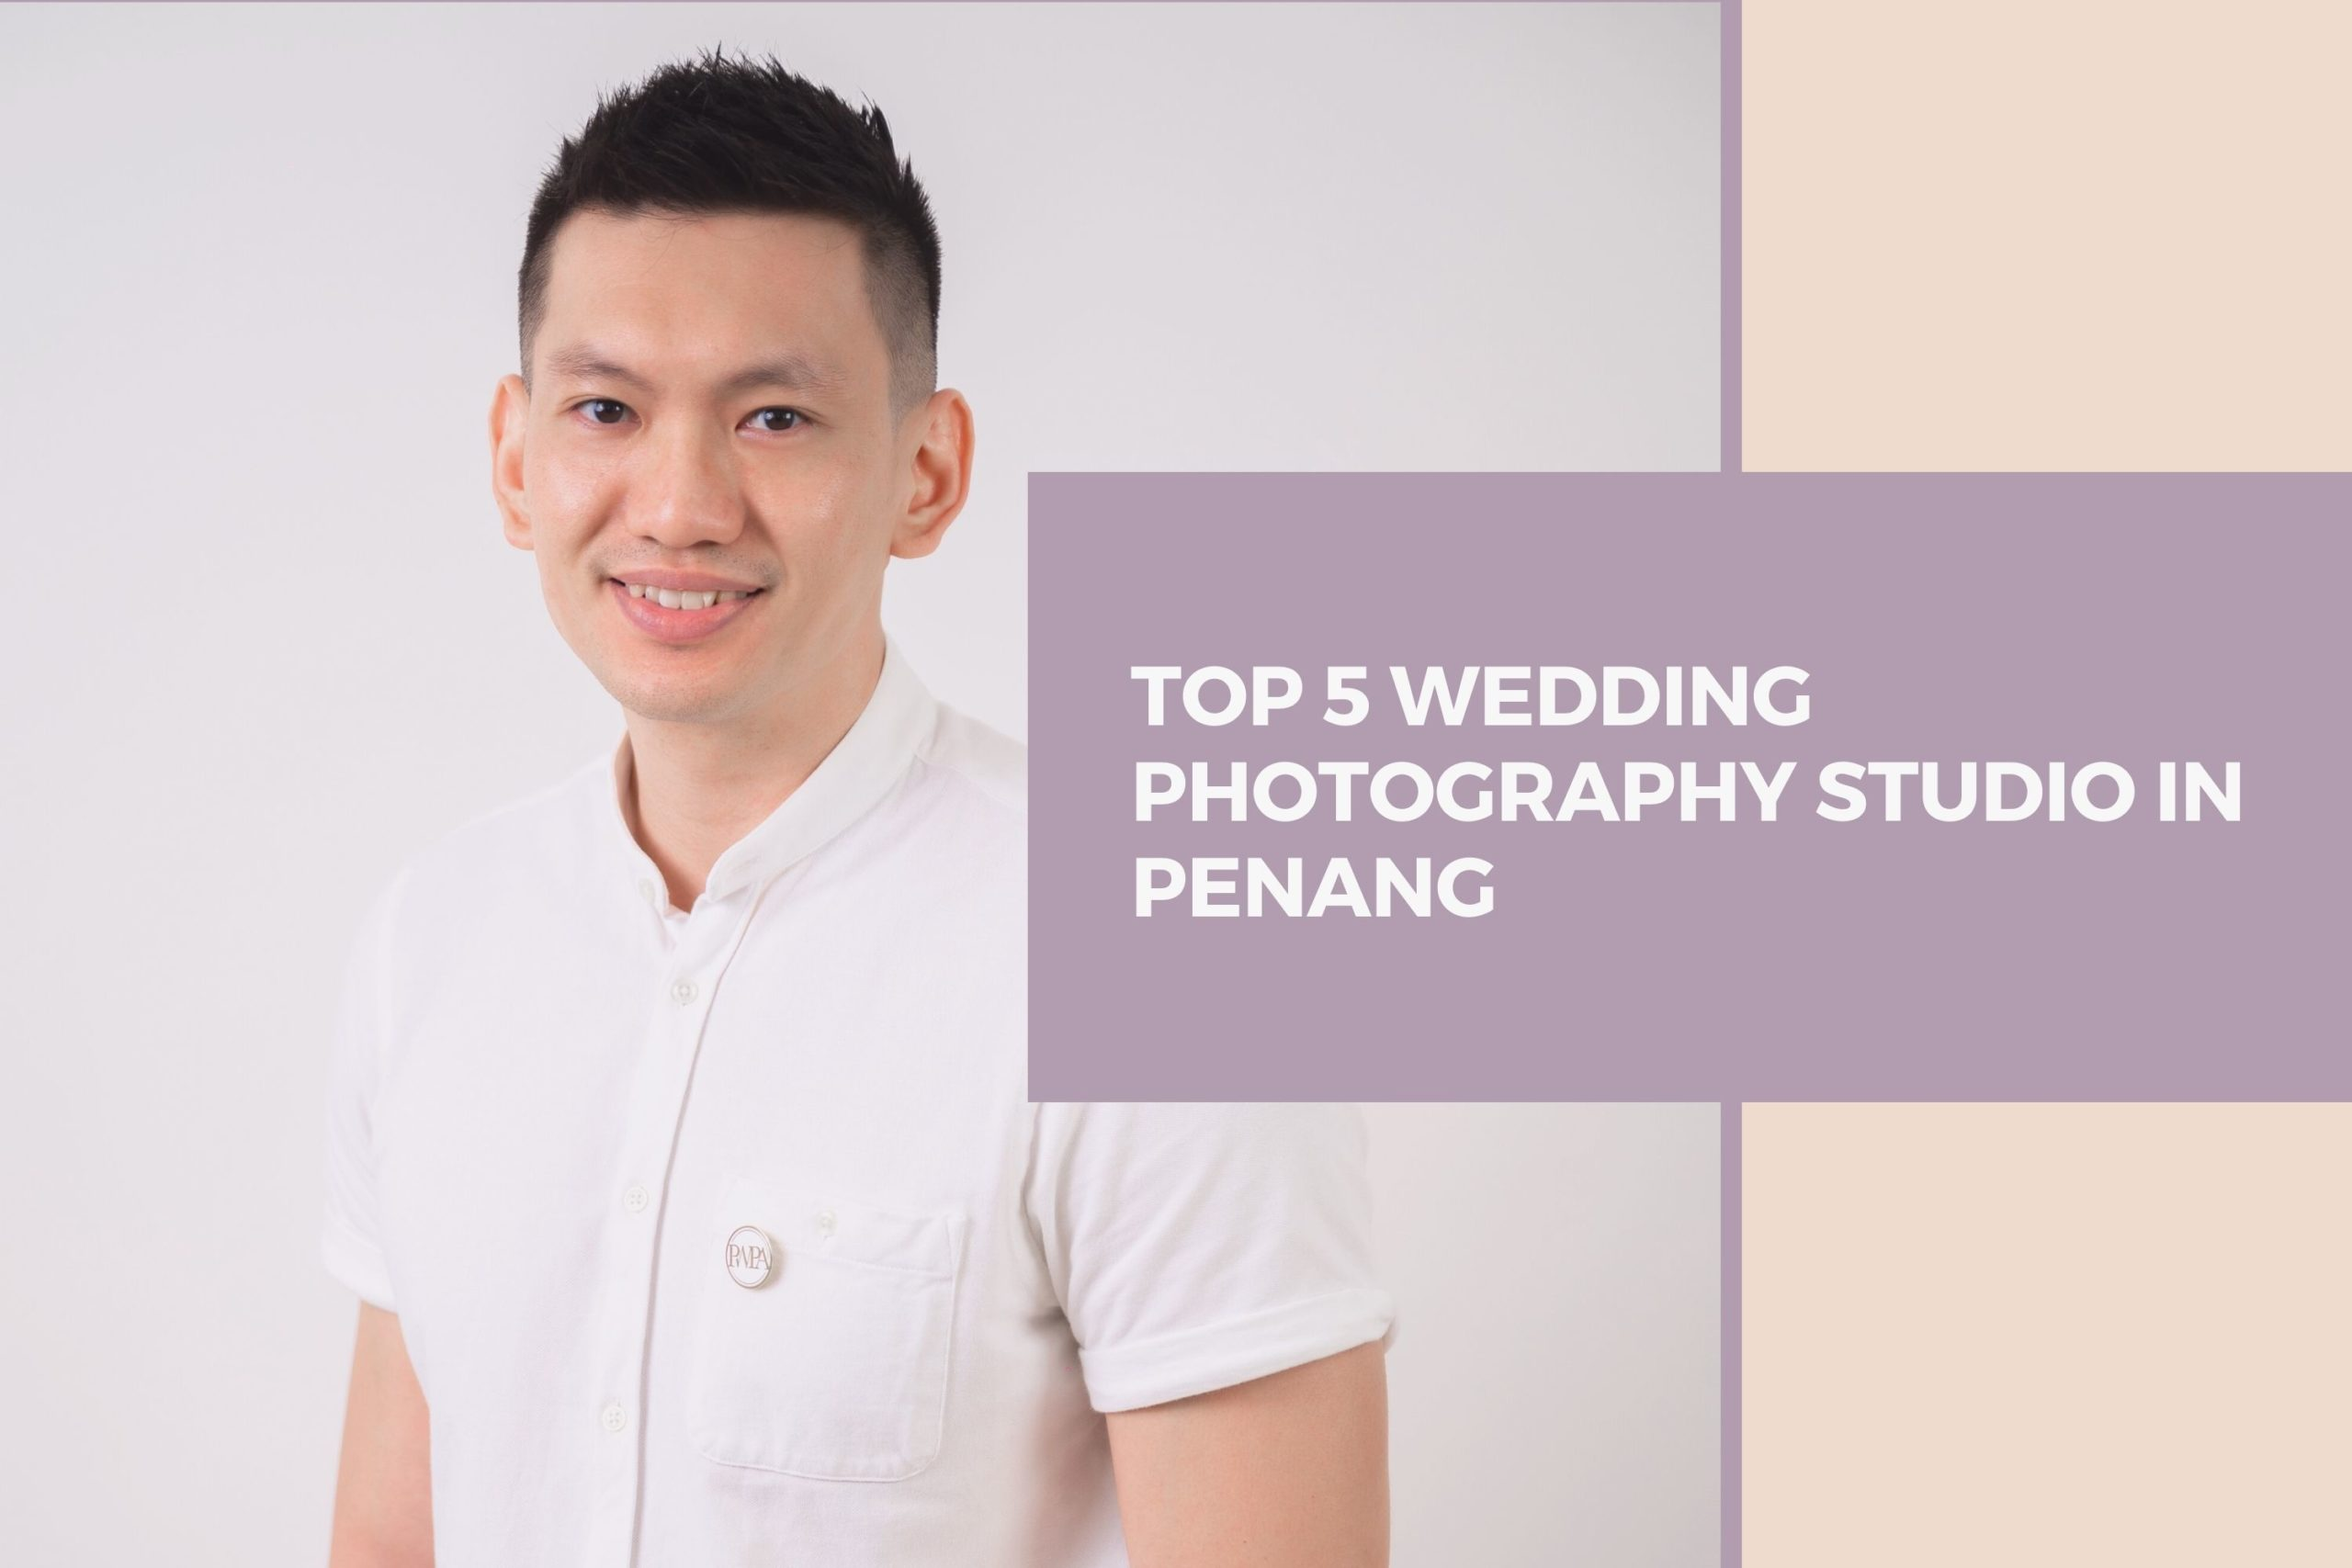 Top 5 Wedding Photography Studio In Penang